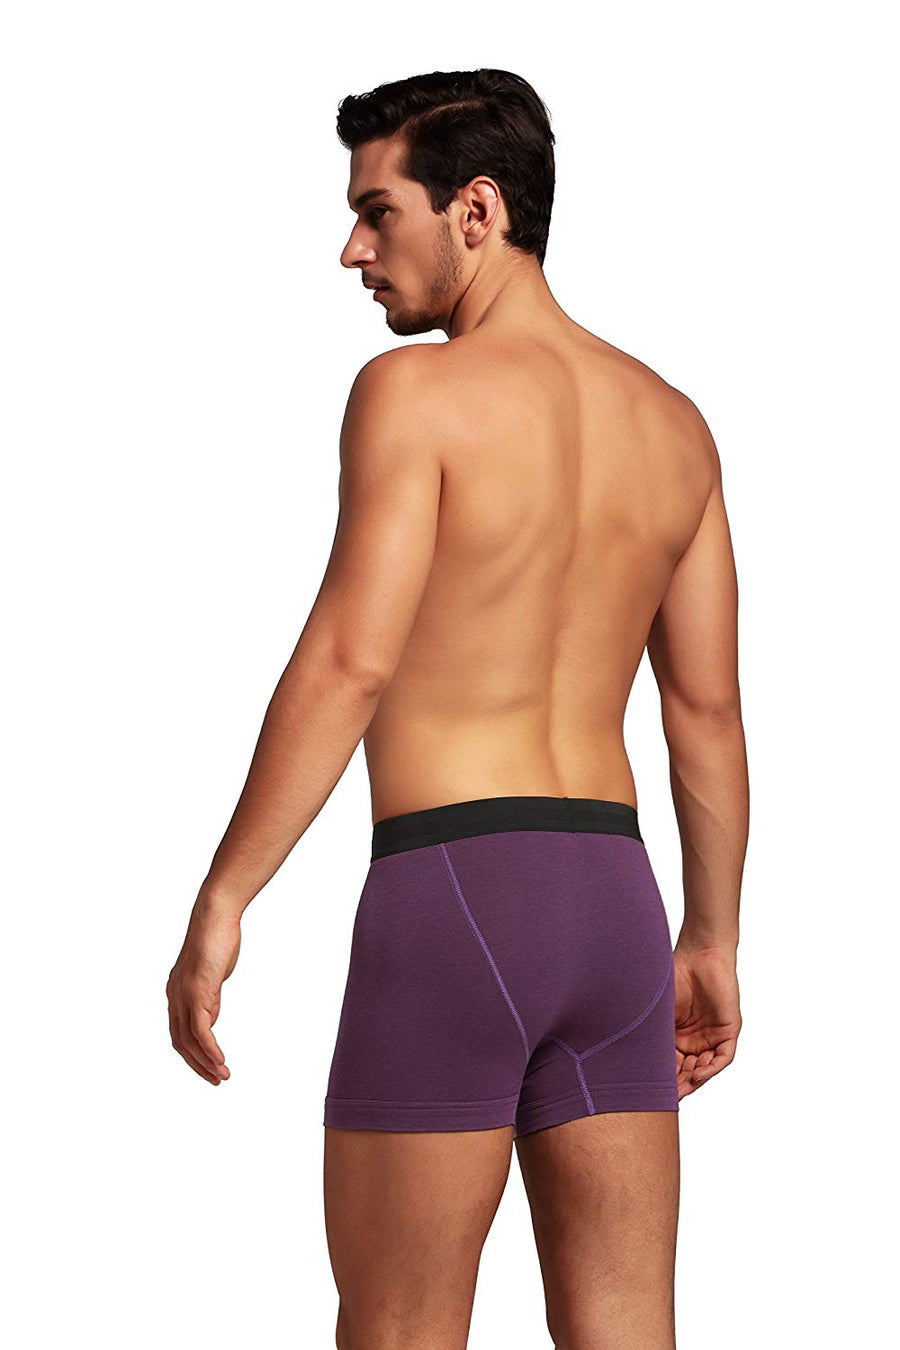 CYZ Men's 2-PK Bamboo Fiber Stretch Cotton Boxer Briefs